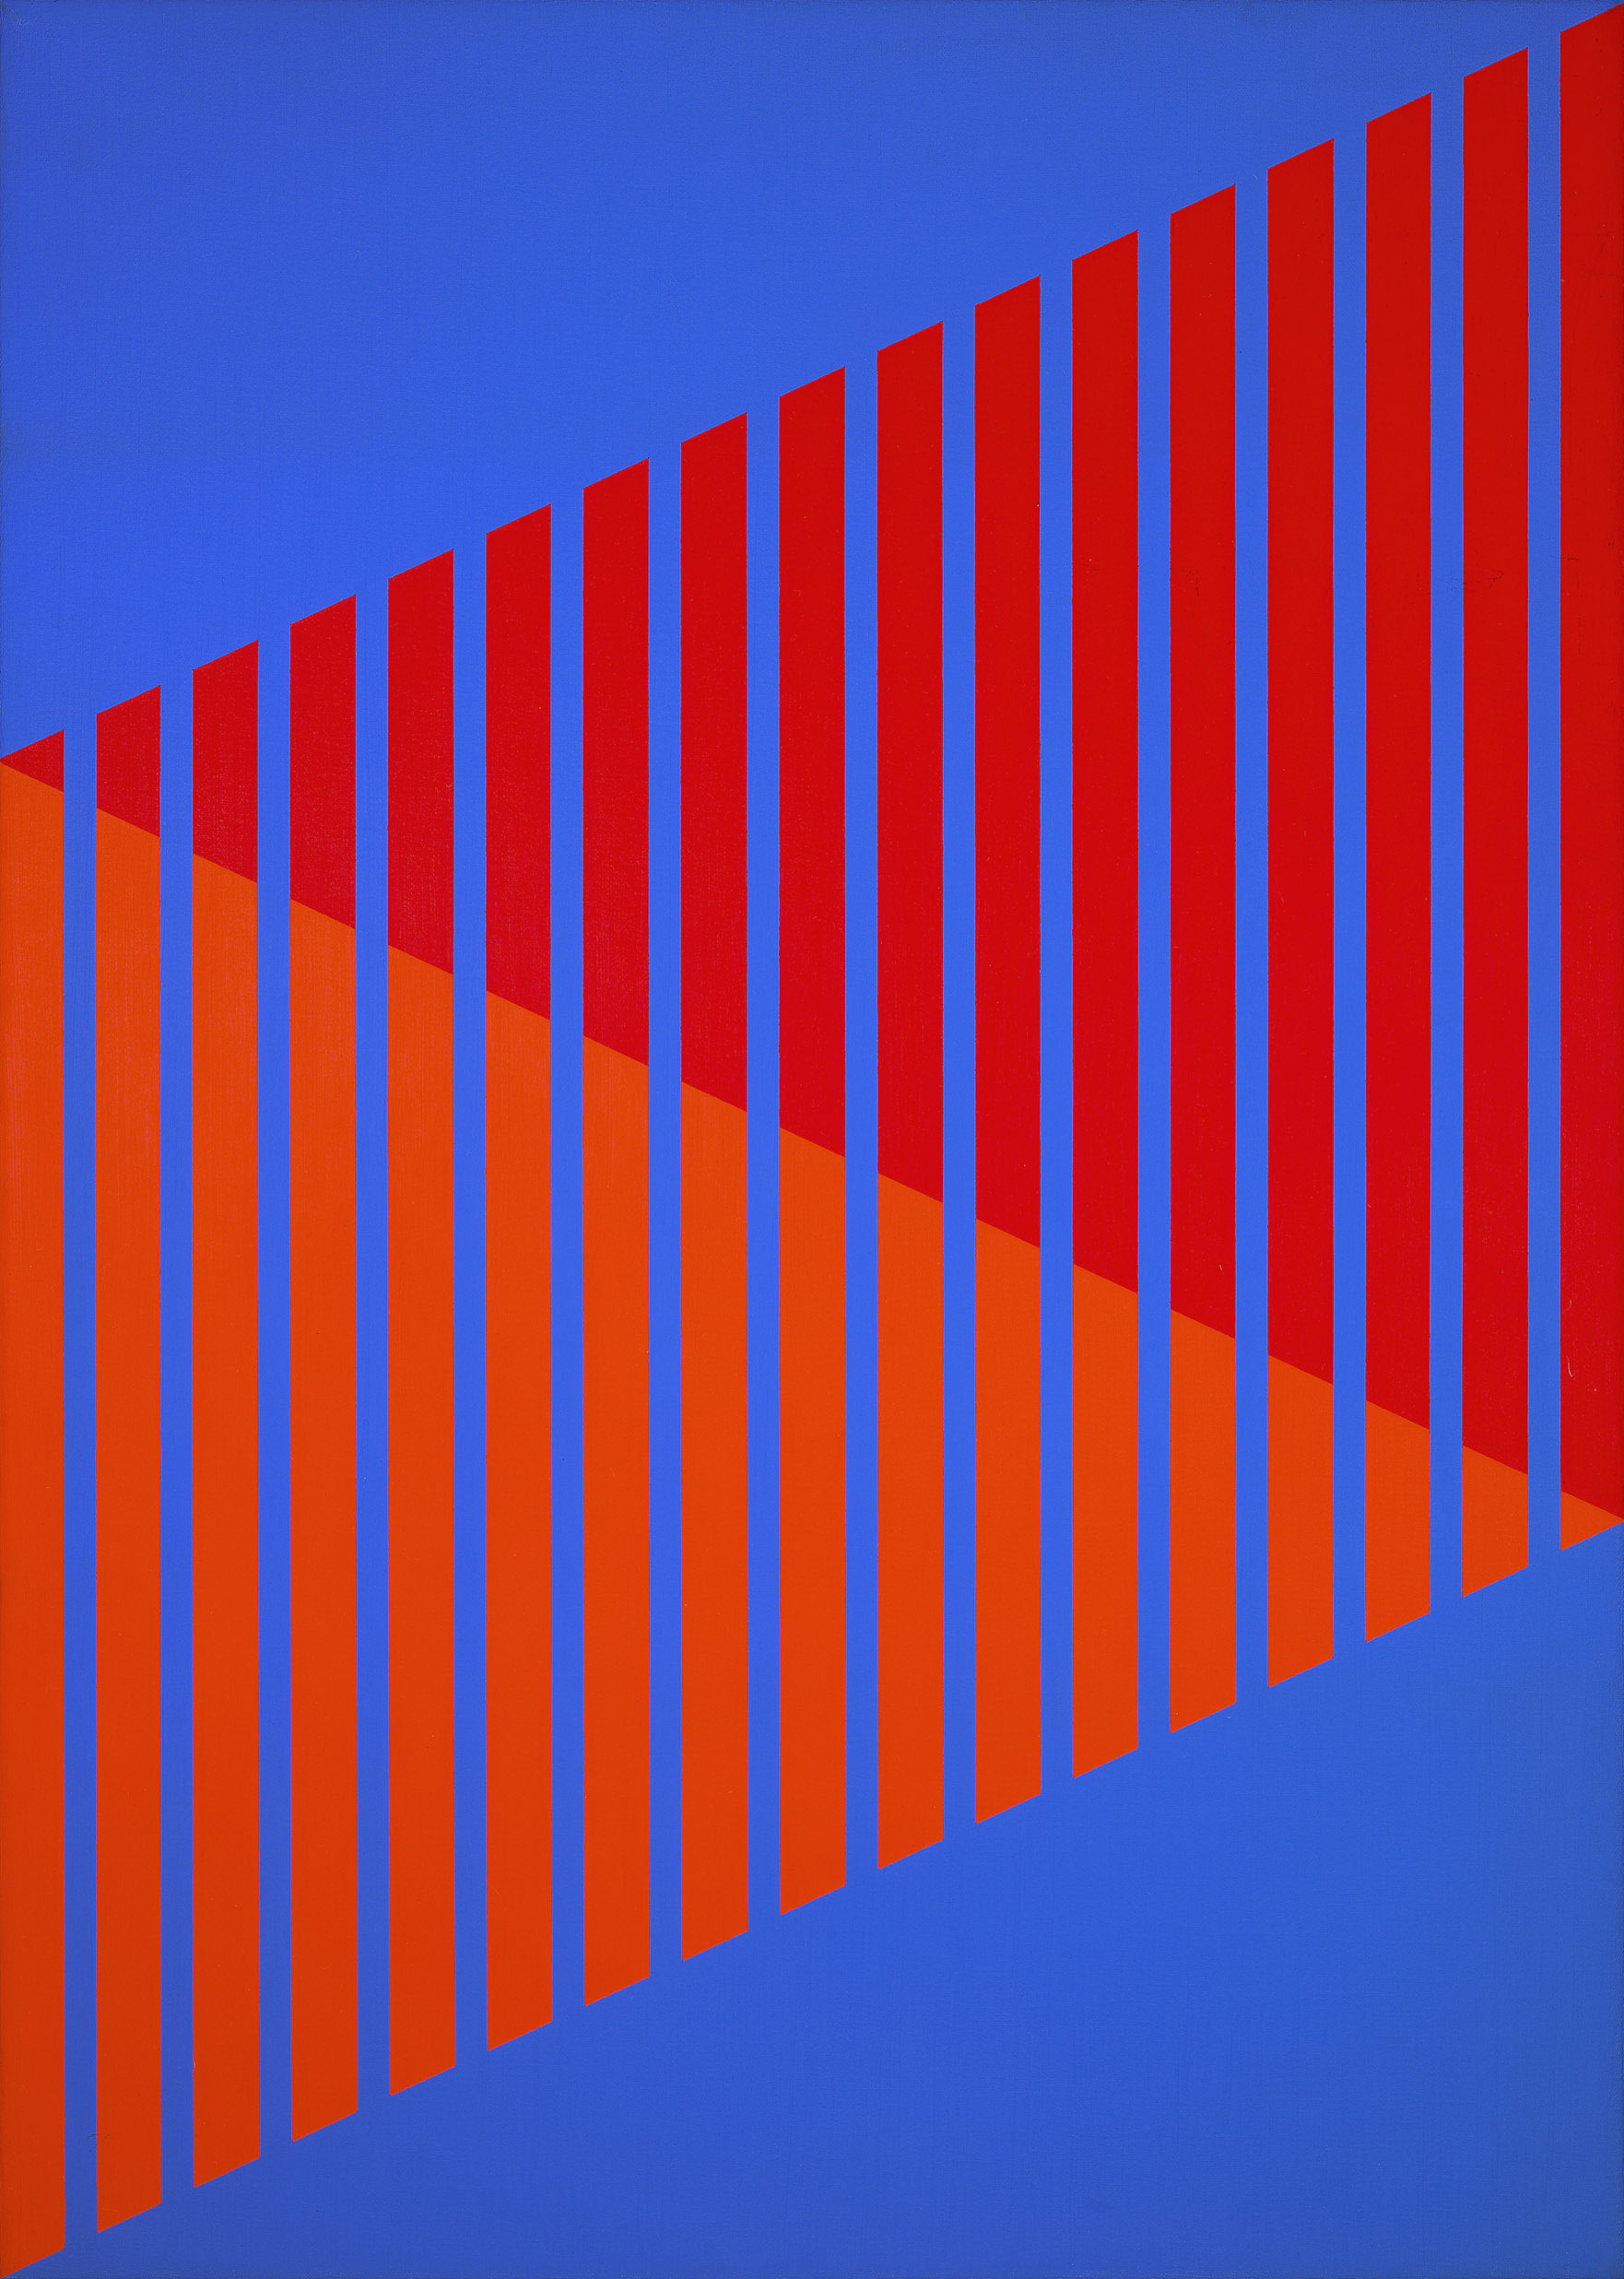 #2 , 1977  oil on canvas 35 x 25 inches; 88.9 x 63.5 centimeters